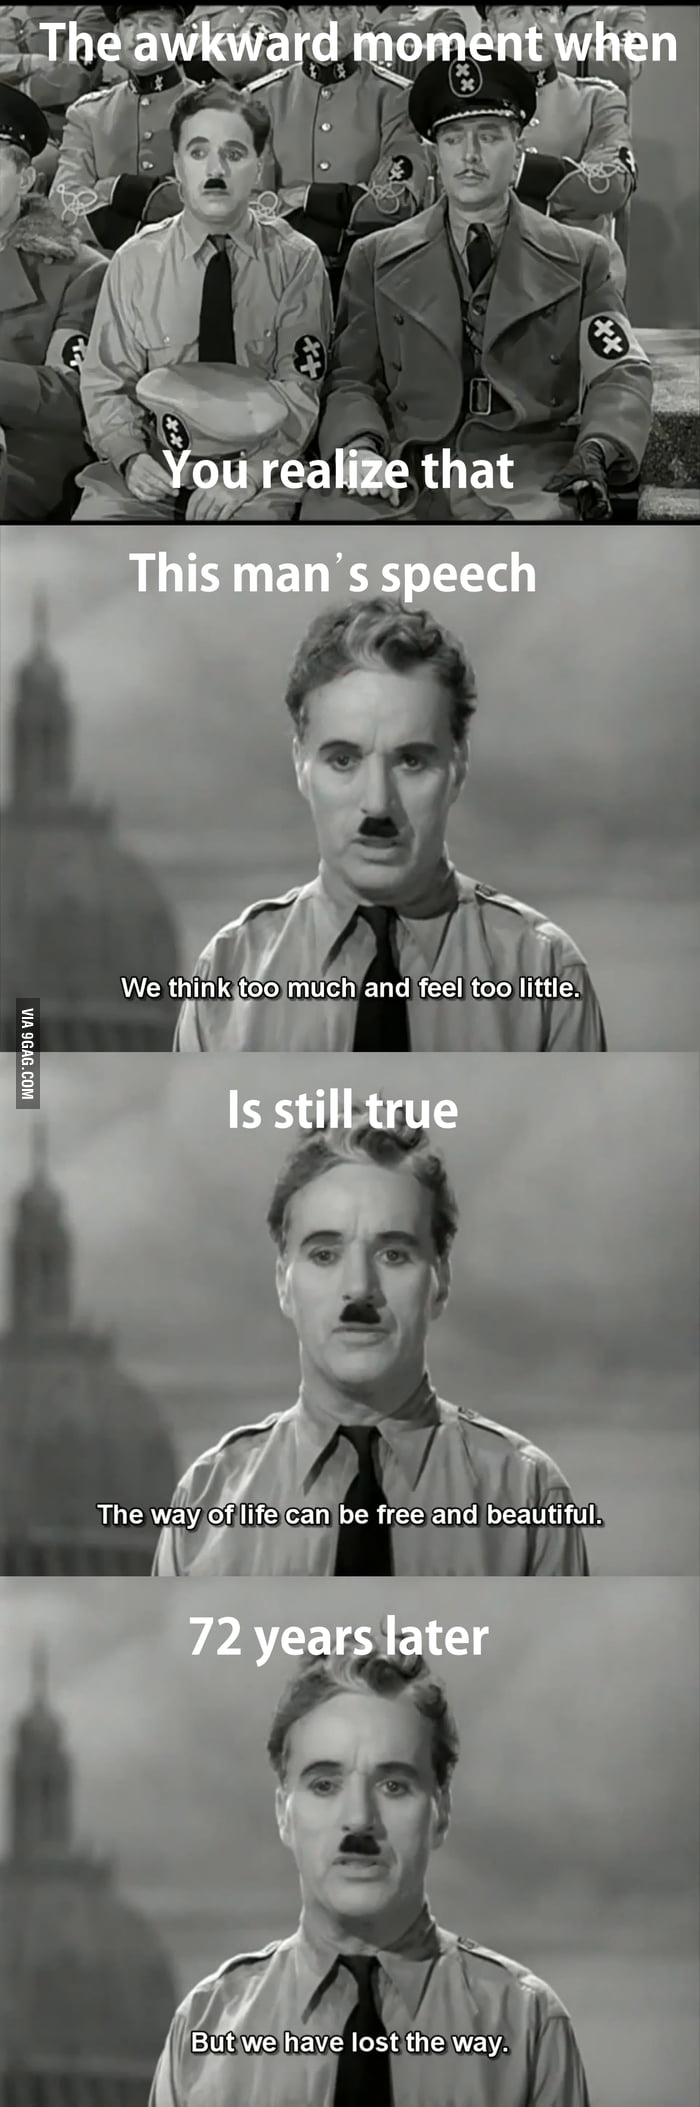 Charlie Chaplin was right about the humanity !!!